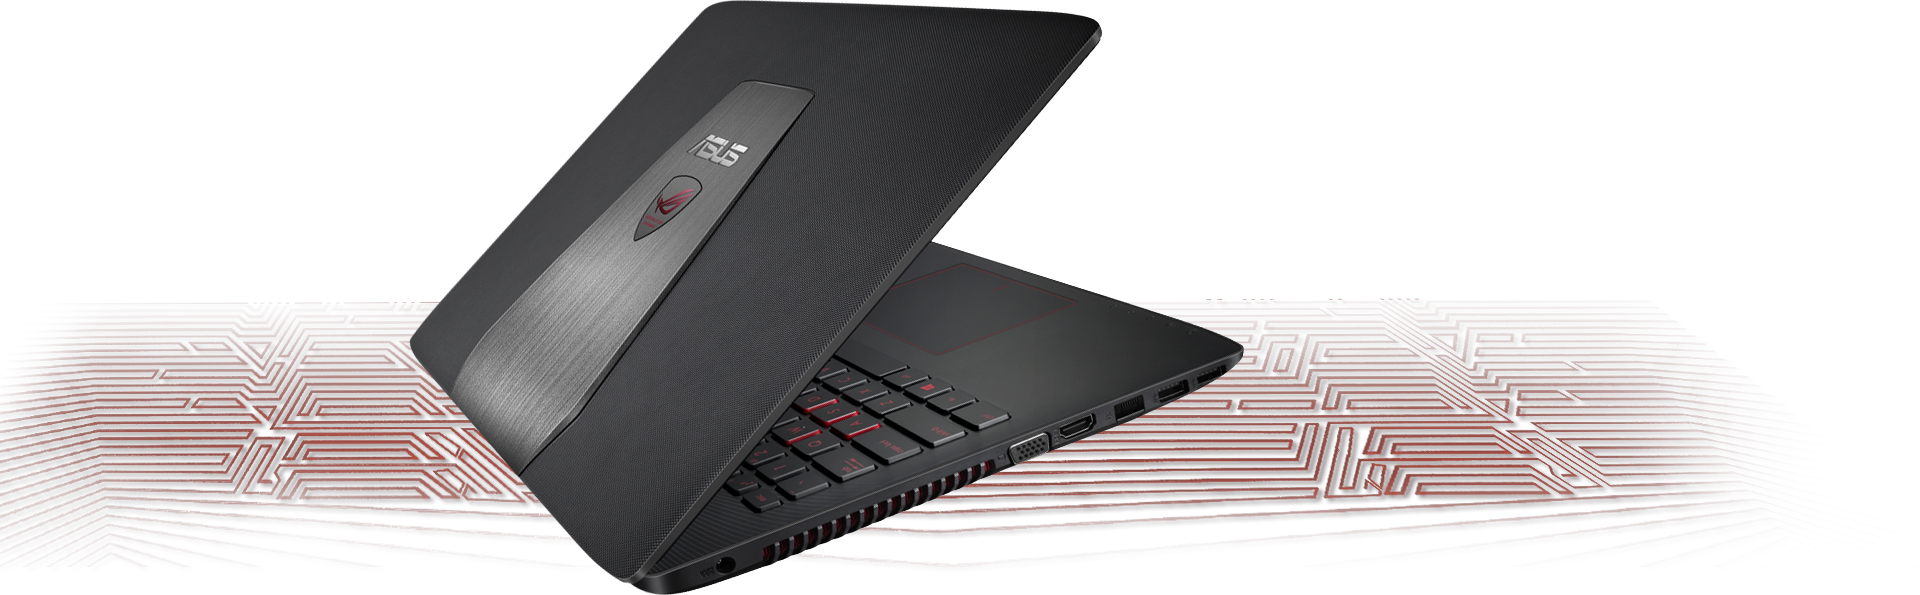 Driver for ASUS GL552JX Intel WLAN